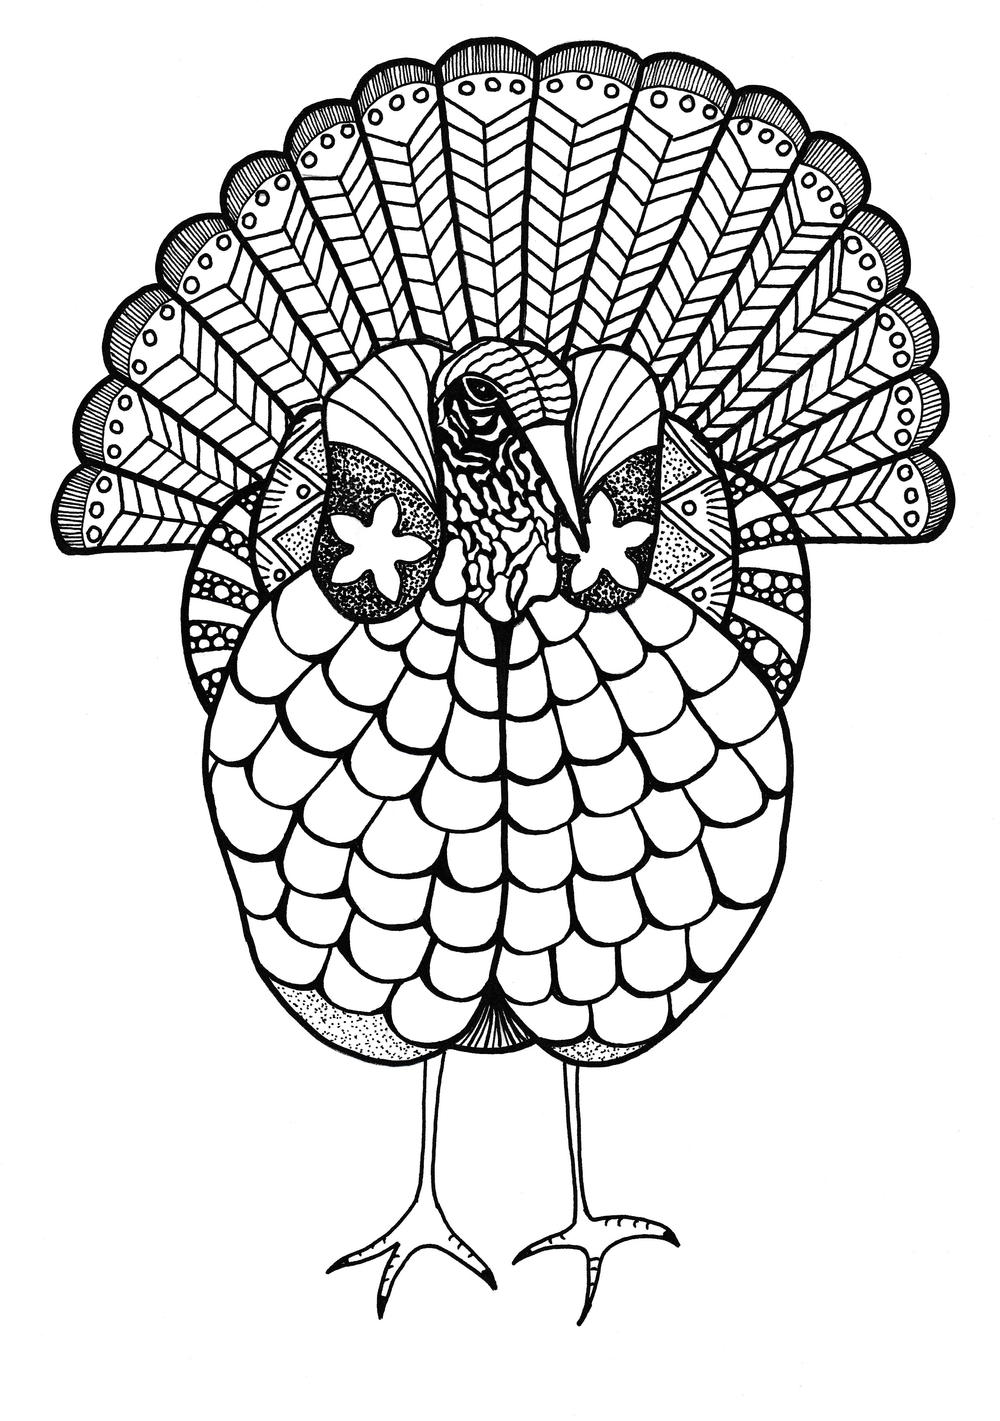 turkey color page colorful turkey adult coloring page favecraftscom turkey color page